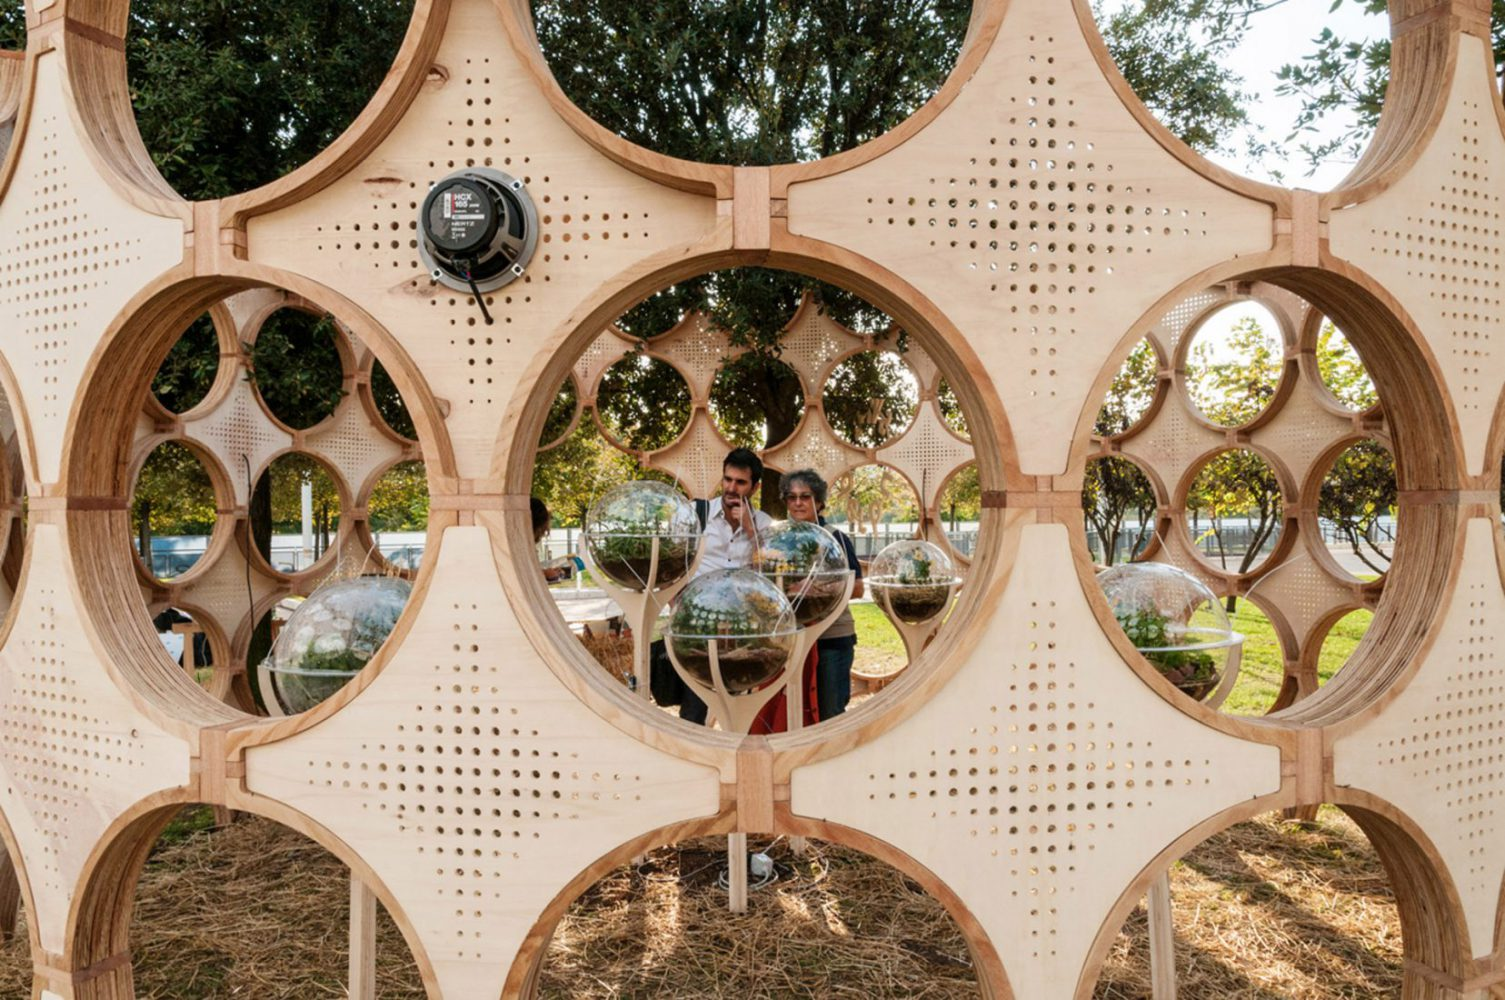 Circular elements for a pavilion